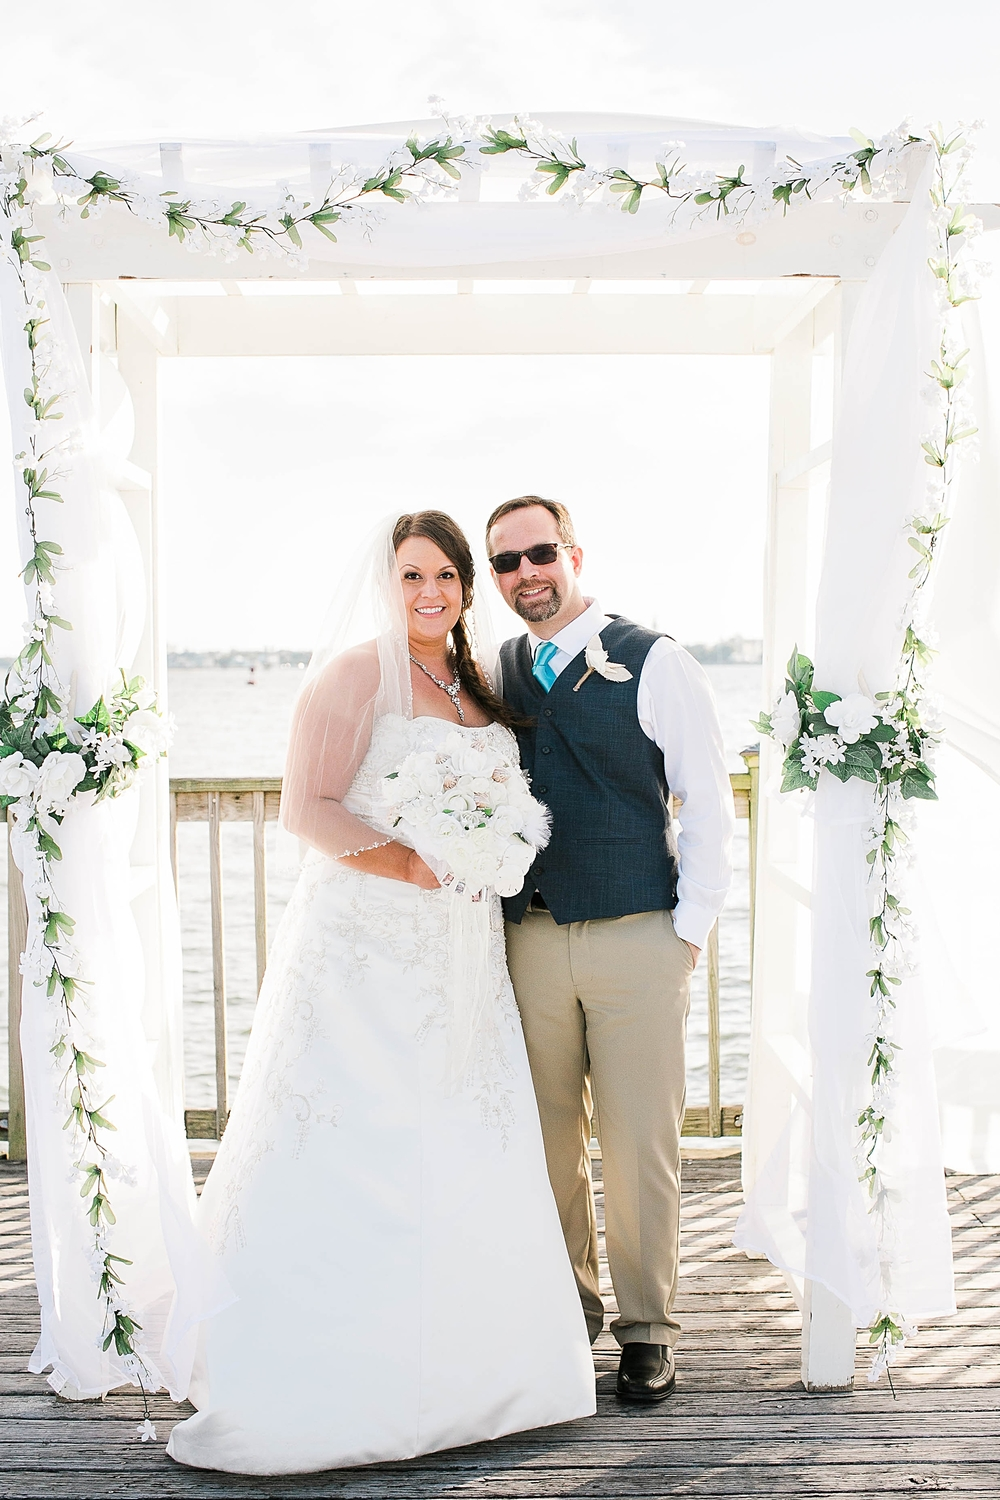 Charleston-Harbor-Resort-And-Marina-Charleston-South-Carolina-Wedding-Photographer-JB-Marie-Photography